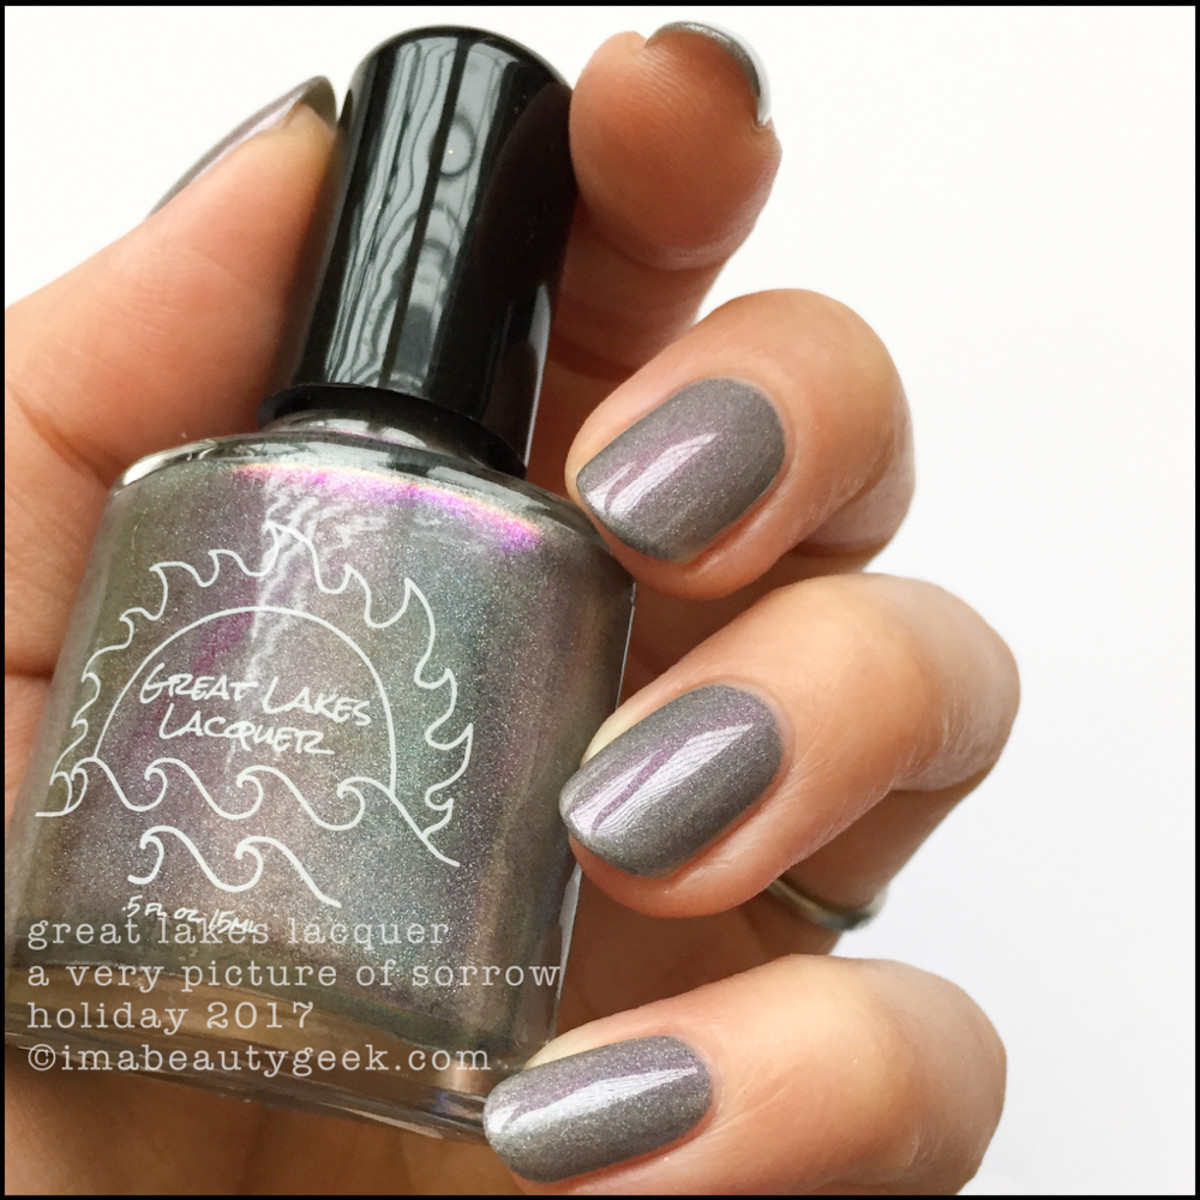 Great Lakes Lacquer A Very Picture of Sorrow 1 _ Great Lakes Lacquer Holiday 2017